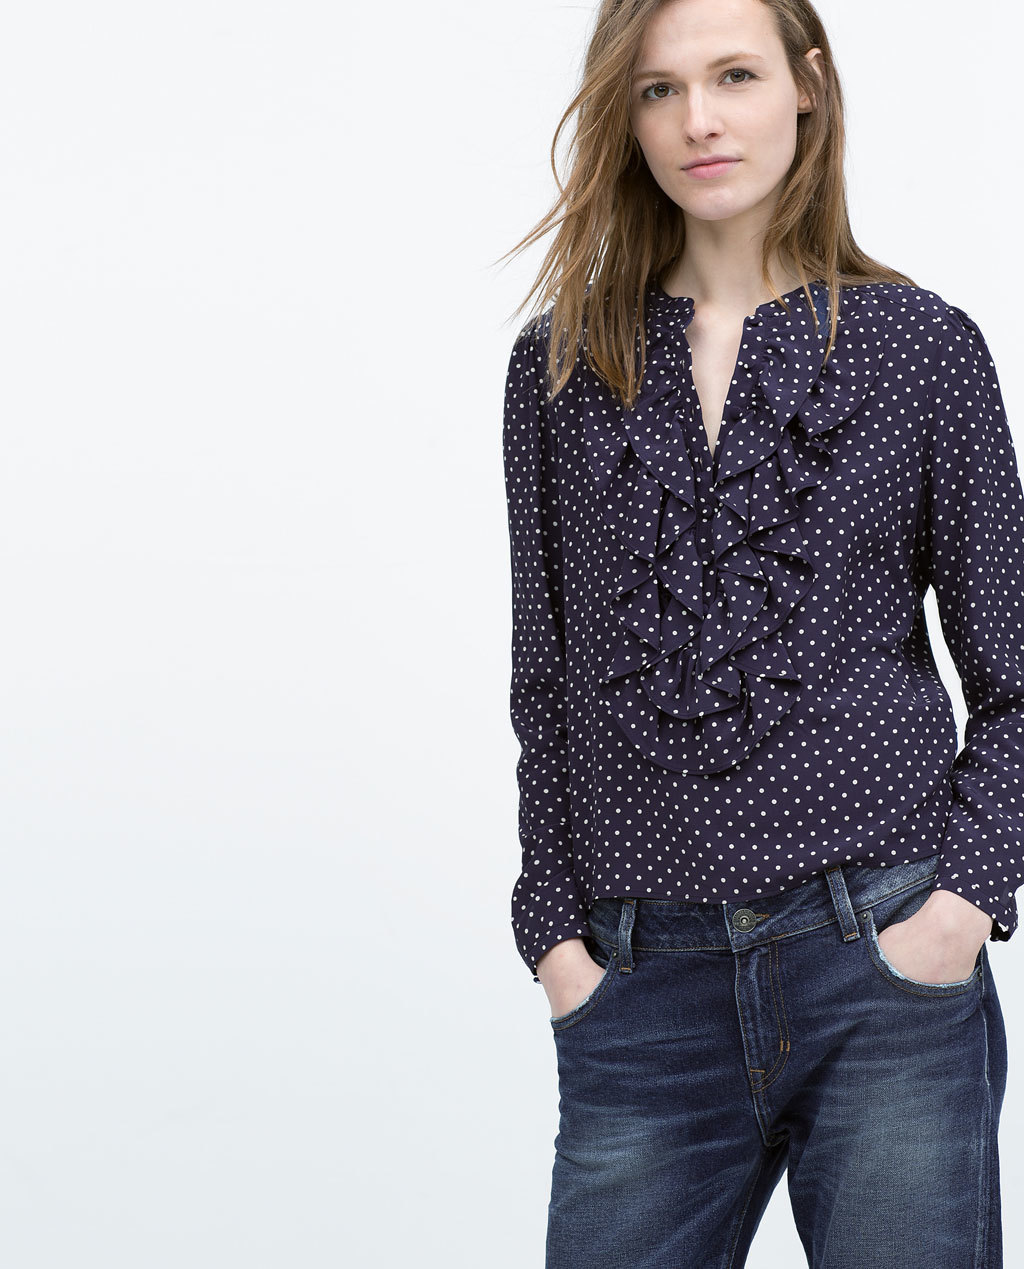 Polka Dot Frilled Blouse - style: blouse; pattern: polka dot; secondary colour: white; predominant colour: navy; occasions: casual, creative work; length: standard; neckline: collarstand & mandarin with v-neck; fibres: viscose/rayon - 100%; fit: straight cut; sleeve length: long sleeve; sleeve style: standard; bust detail: bulky details at bust; pattern type: fabric; pattern size: standard; texture group: other - light to midweight; season: s/s 2015; wardrobe: highlight